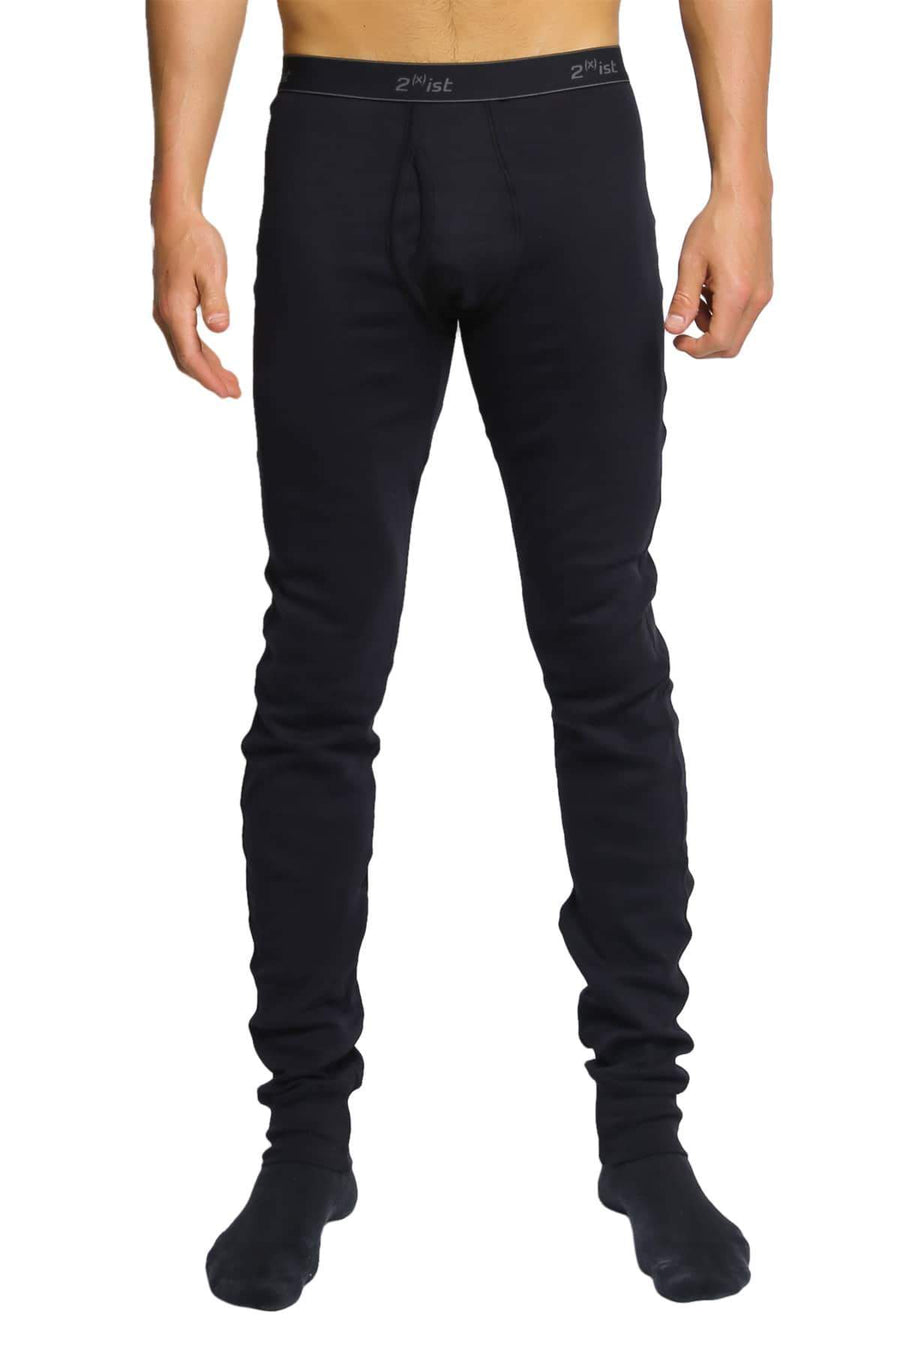 Long Underwear - 2(X)IST Black Essential Long Underwear -   jetcube